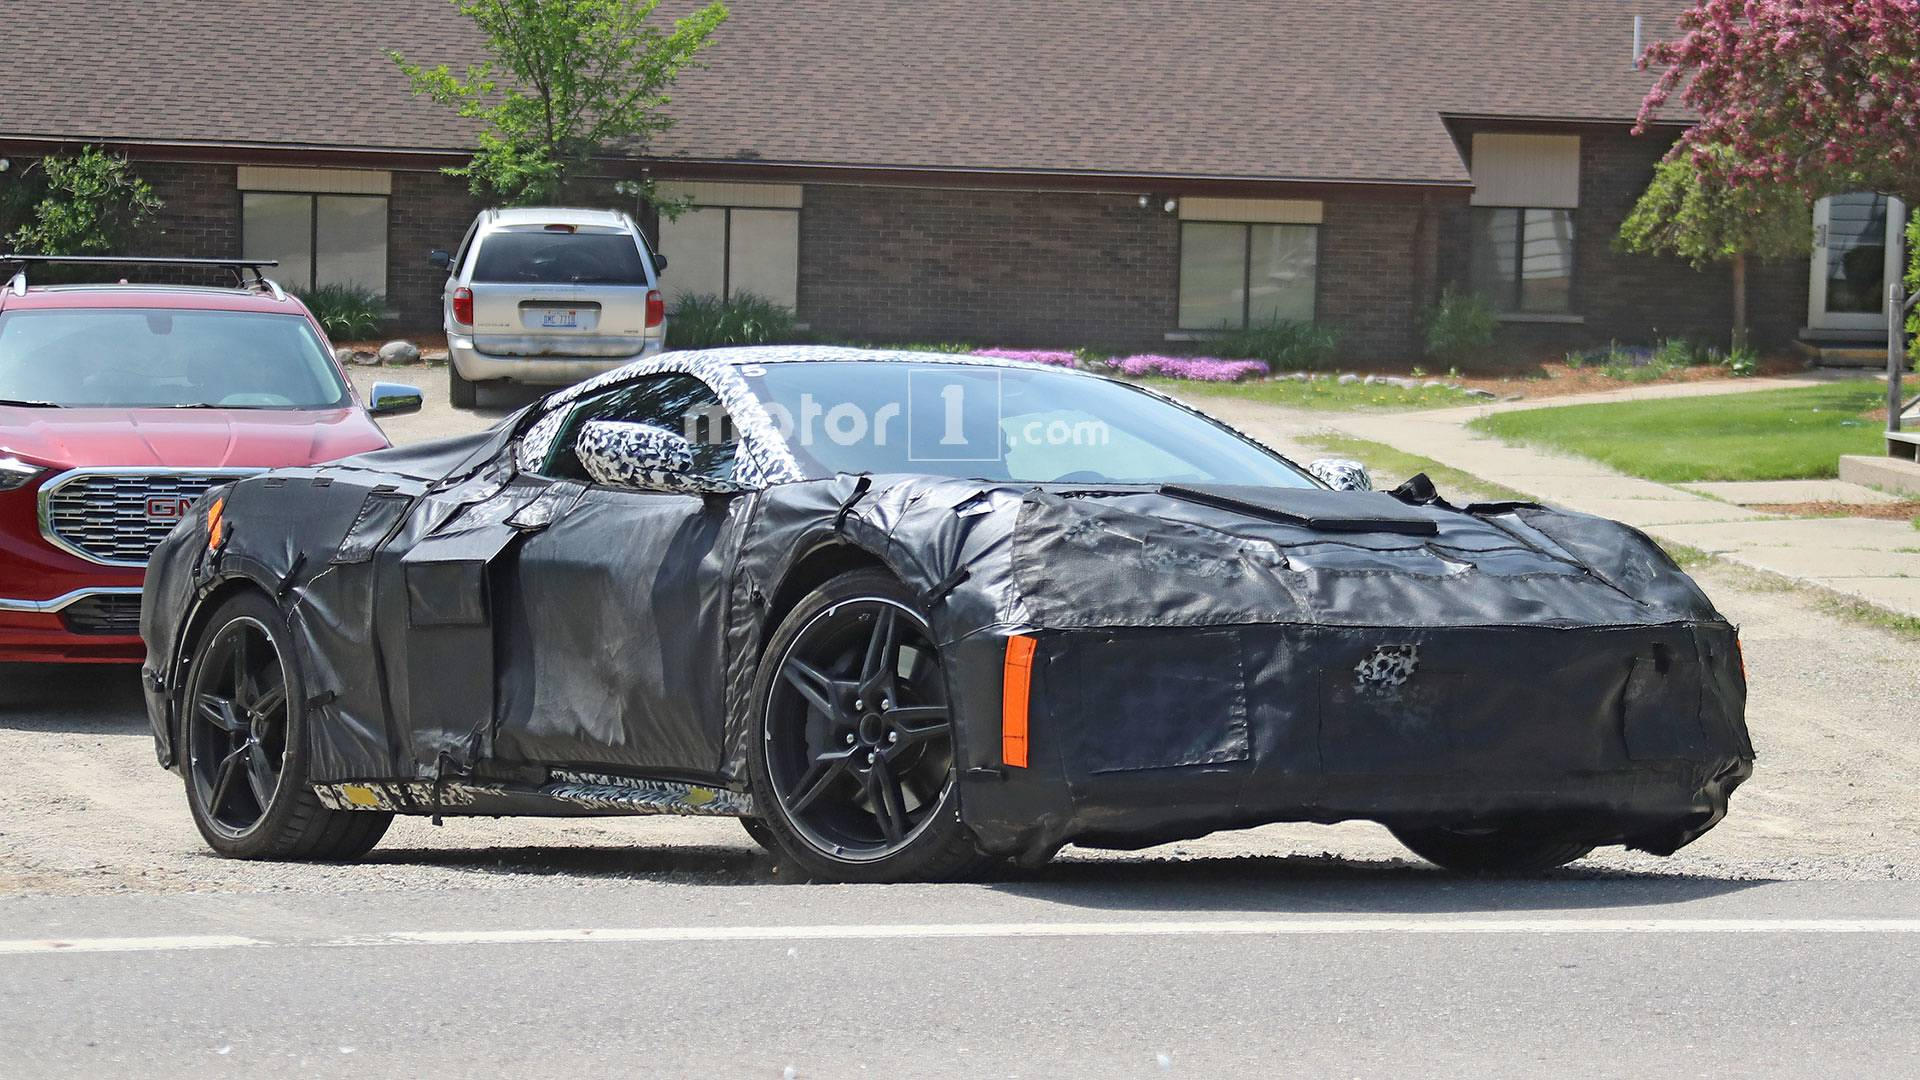 94 The Best 2020 Corvette ZR1 Release Date